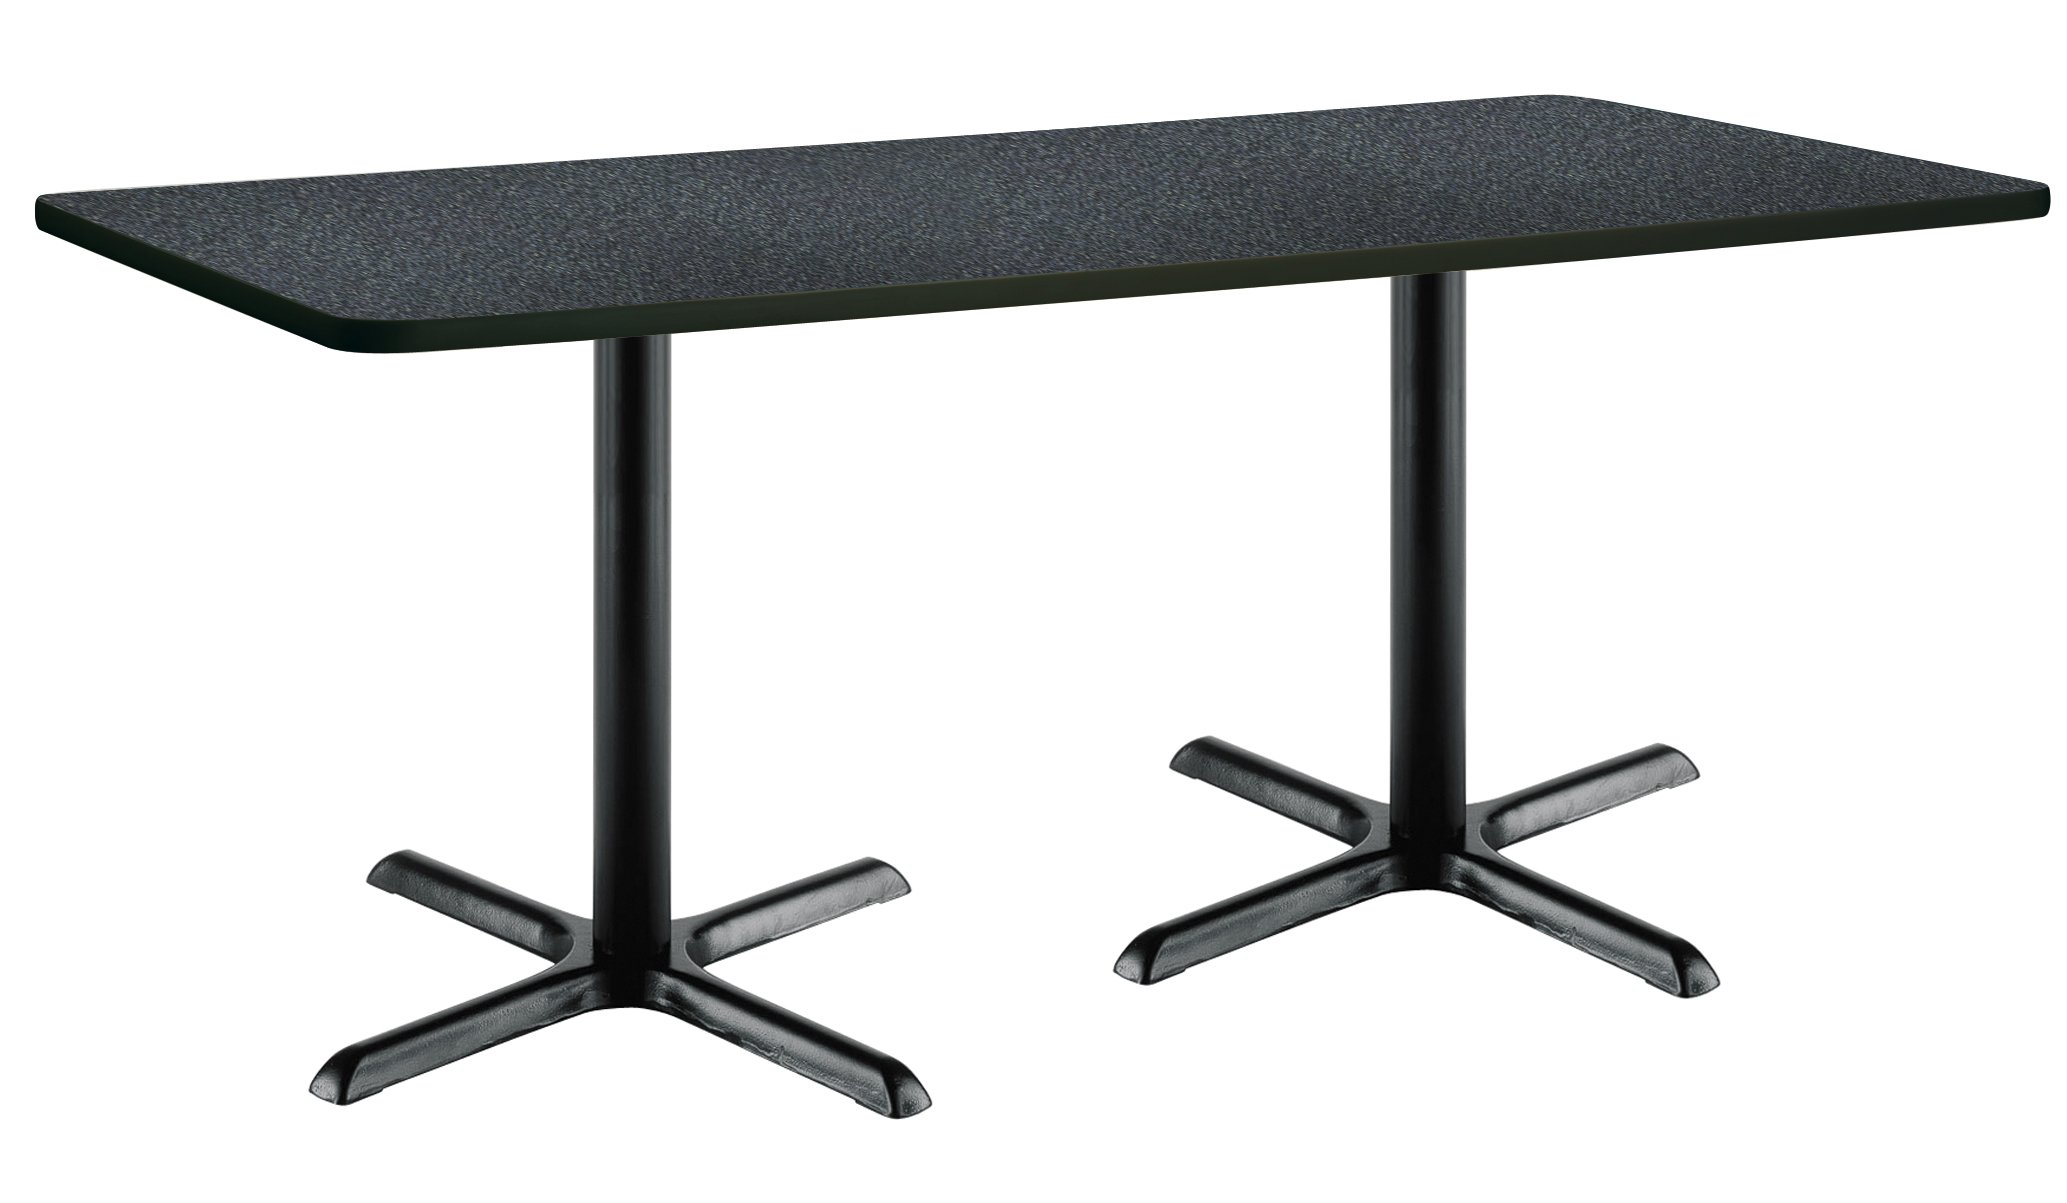 36'' x 72'' Pedestal Table with Graphite Nebula Top, Black X-Base by KFI Seating